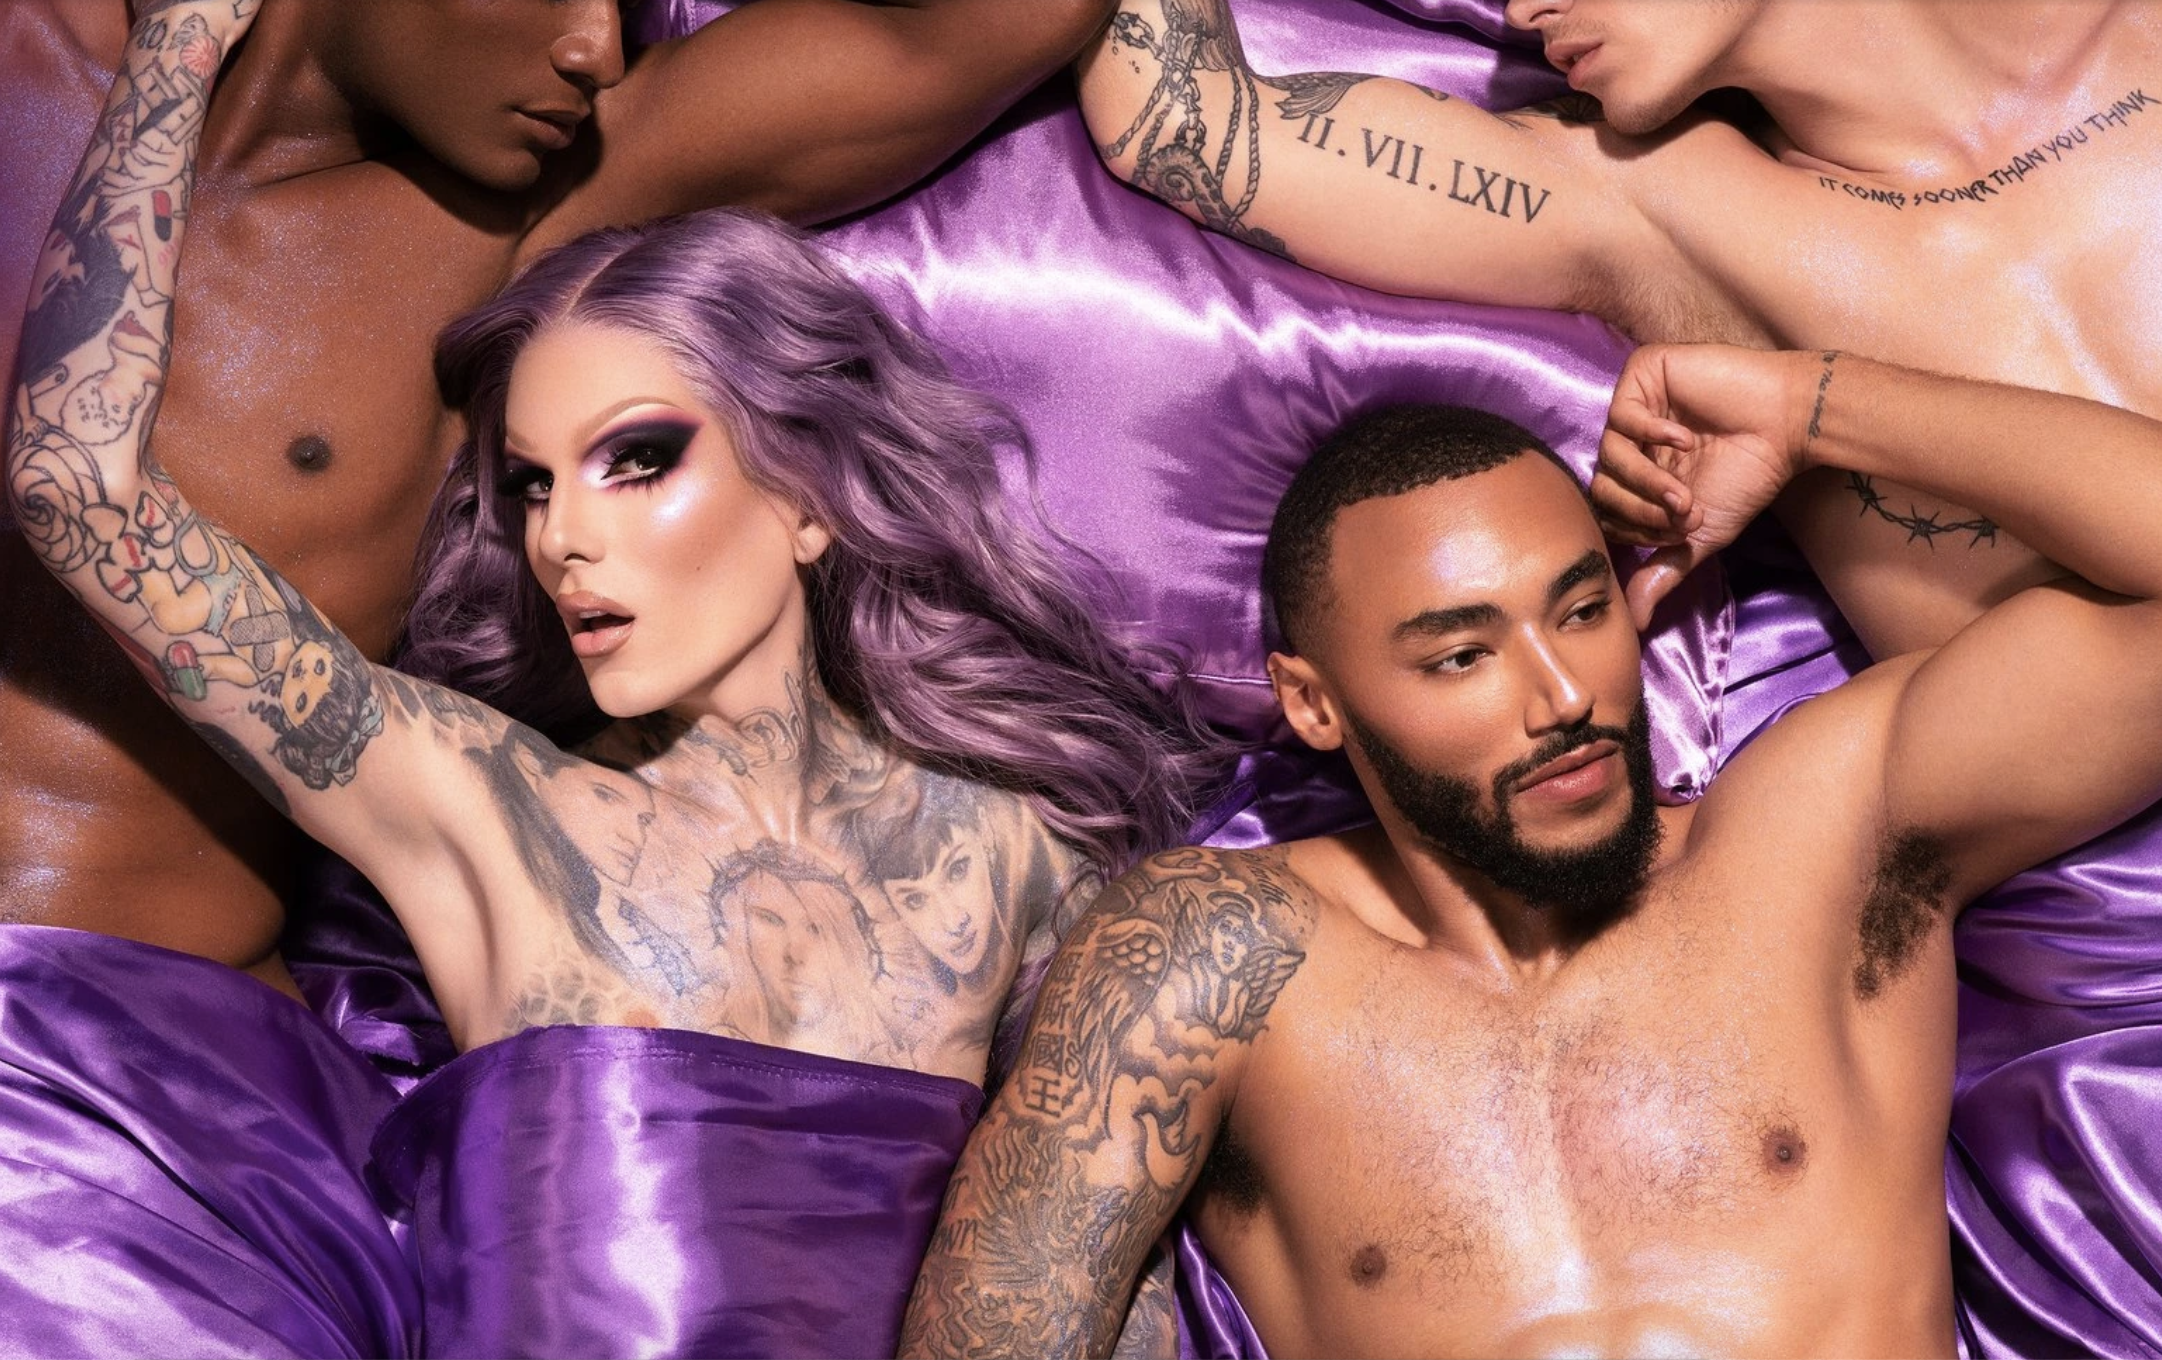 An advertisement for Jeffree Star Cosmetics' Blood Lust Collection, featuring Jeffree Star himself laying with scantily clad men on a purple silk sheet.